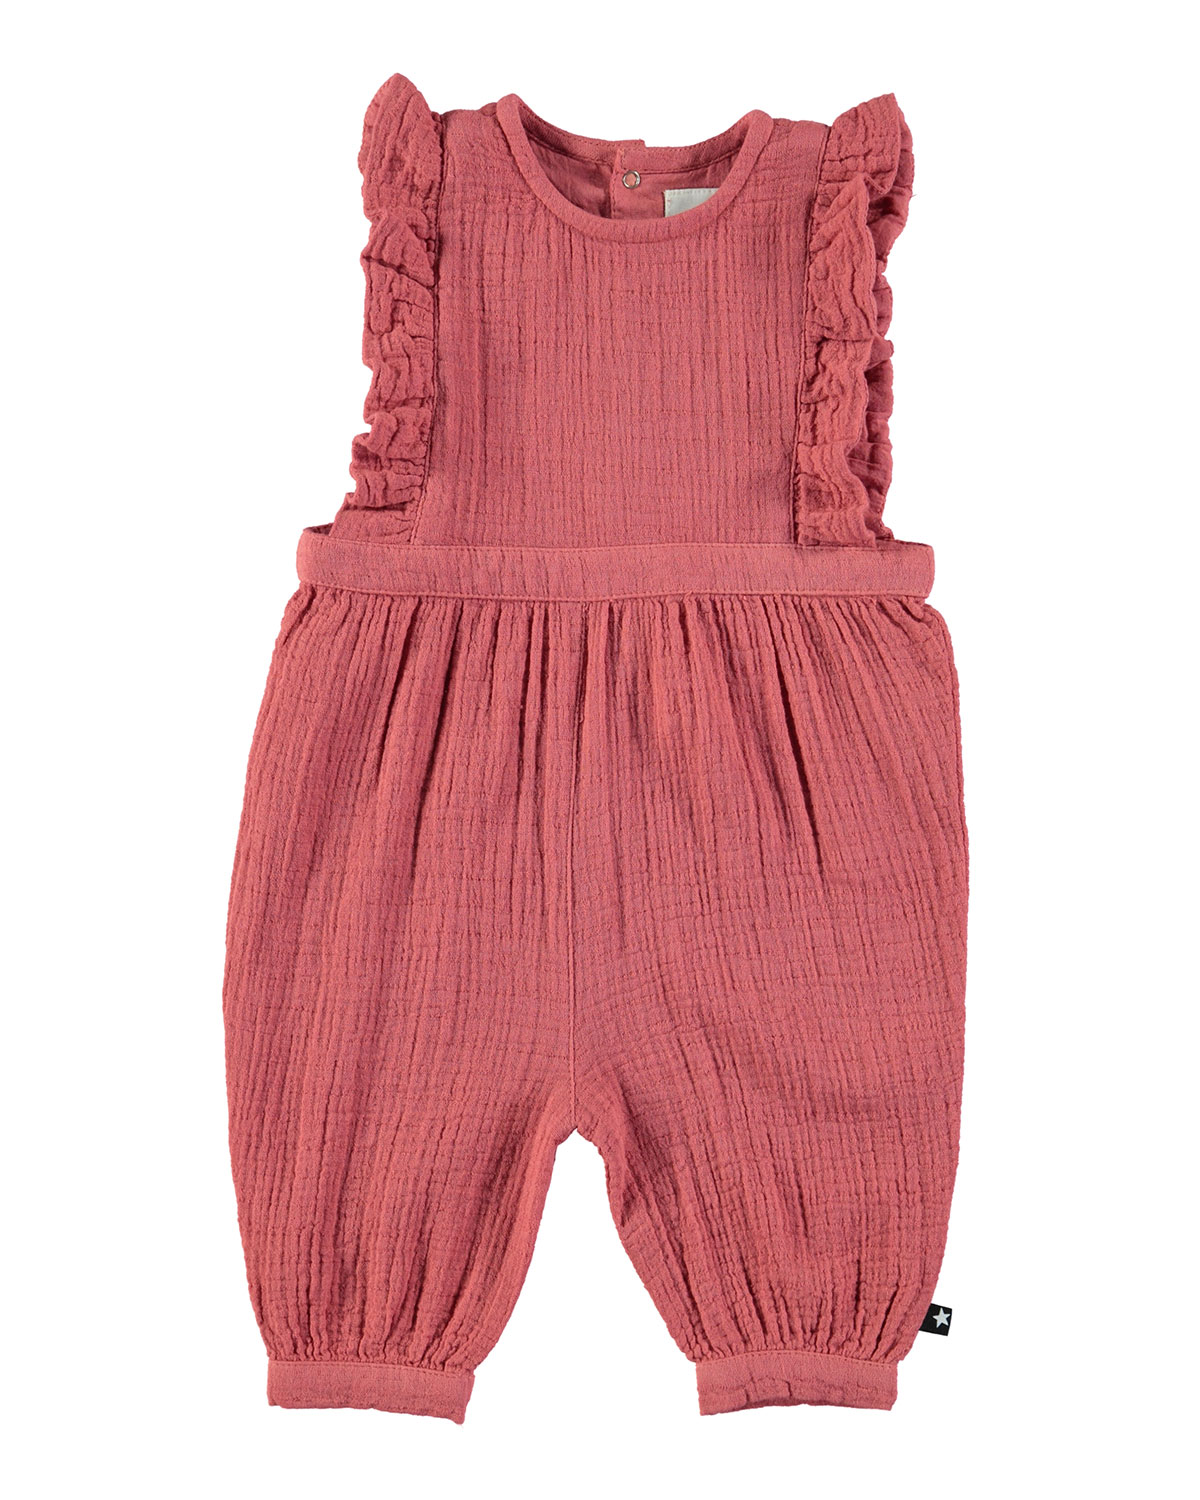 Fabia Ruffle-Trim Cotton Overalls, Size 3-18 Months